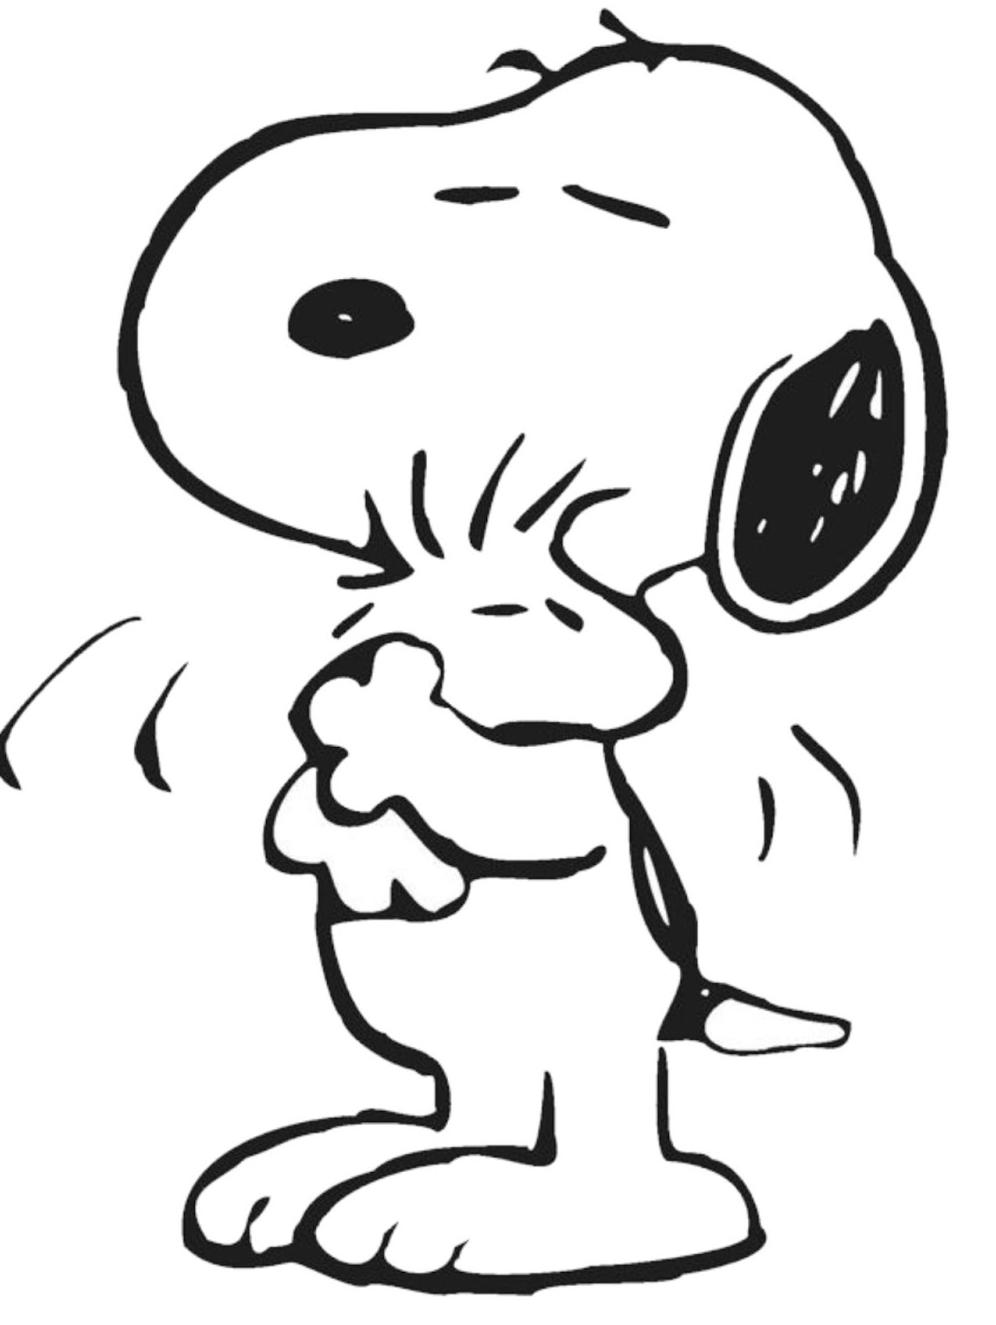 996x1325 Peanuts Coloring Pages Characters Simonschoolblog Free Online